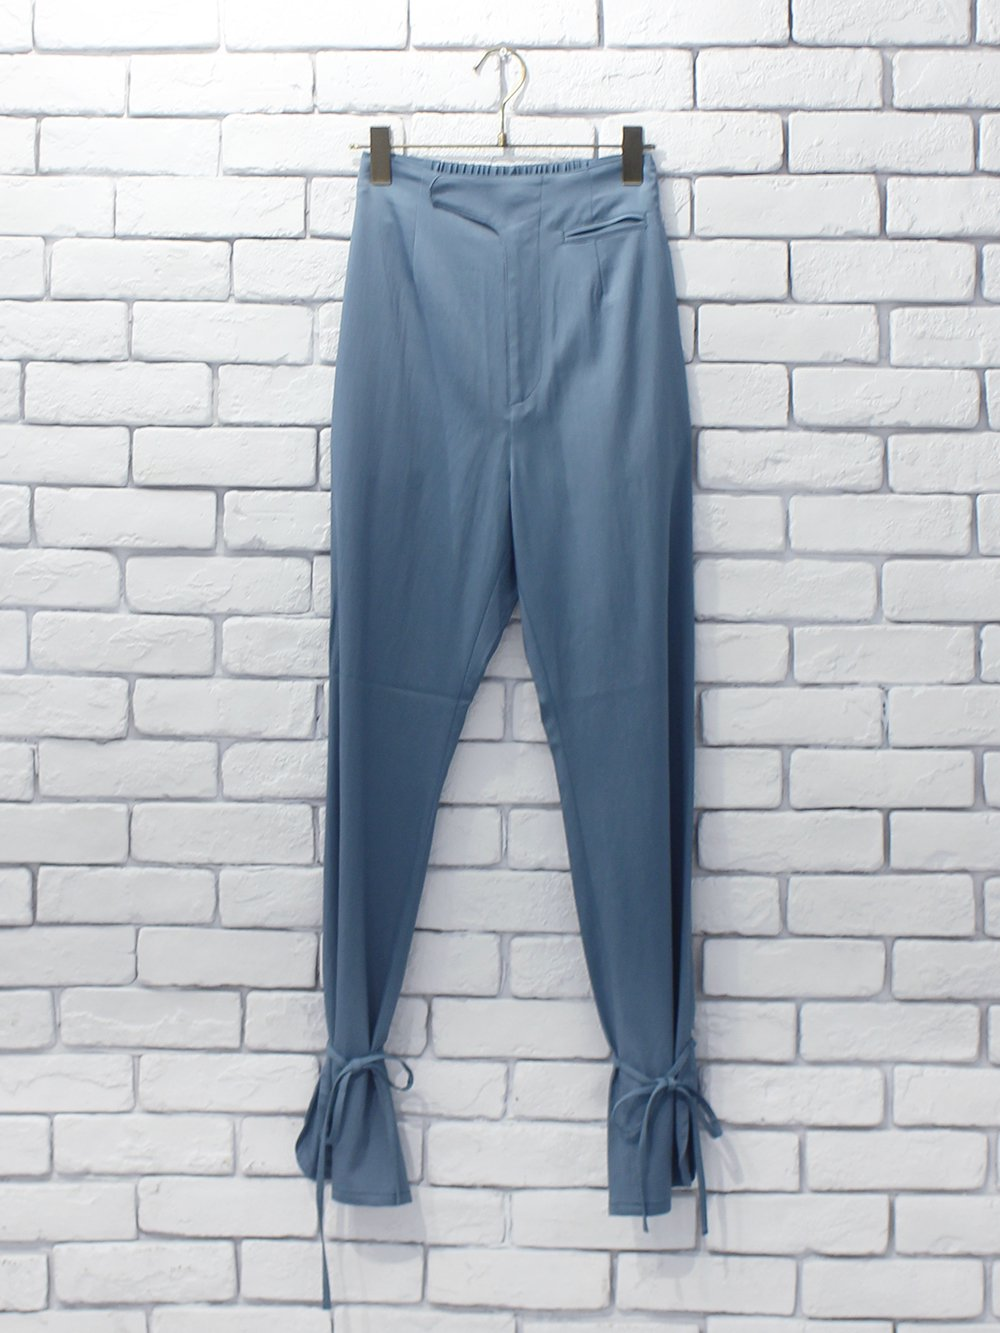 "<img class='new_mark_img1' src='https://img.shop-pro.jp/img/new/icons8.gif' style='border:none;display:inline;margin:0px;padding:0px;width:auto;' />FILL THE BILL"" BOOTSCUT SLIT TROUSER """